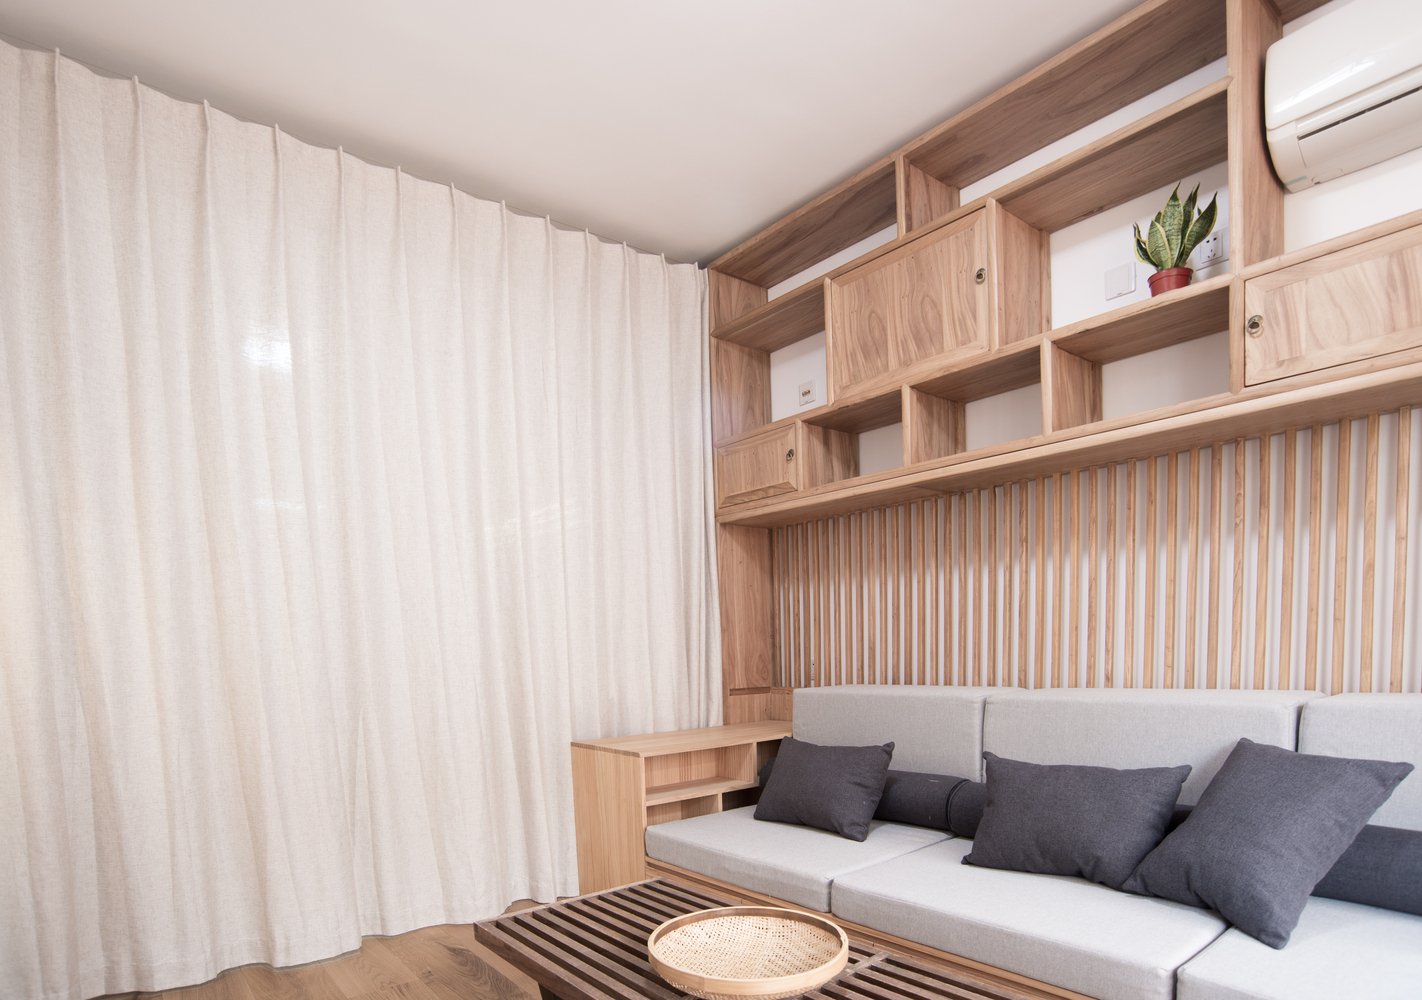 Gallery of A Traditional and Simple Chinese Home Design / Guo ...